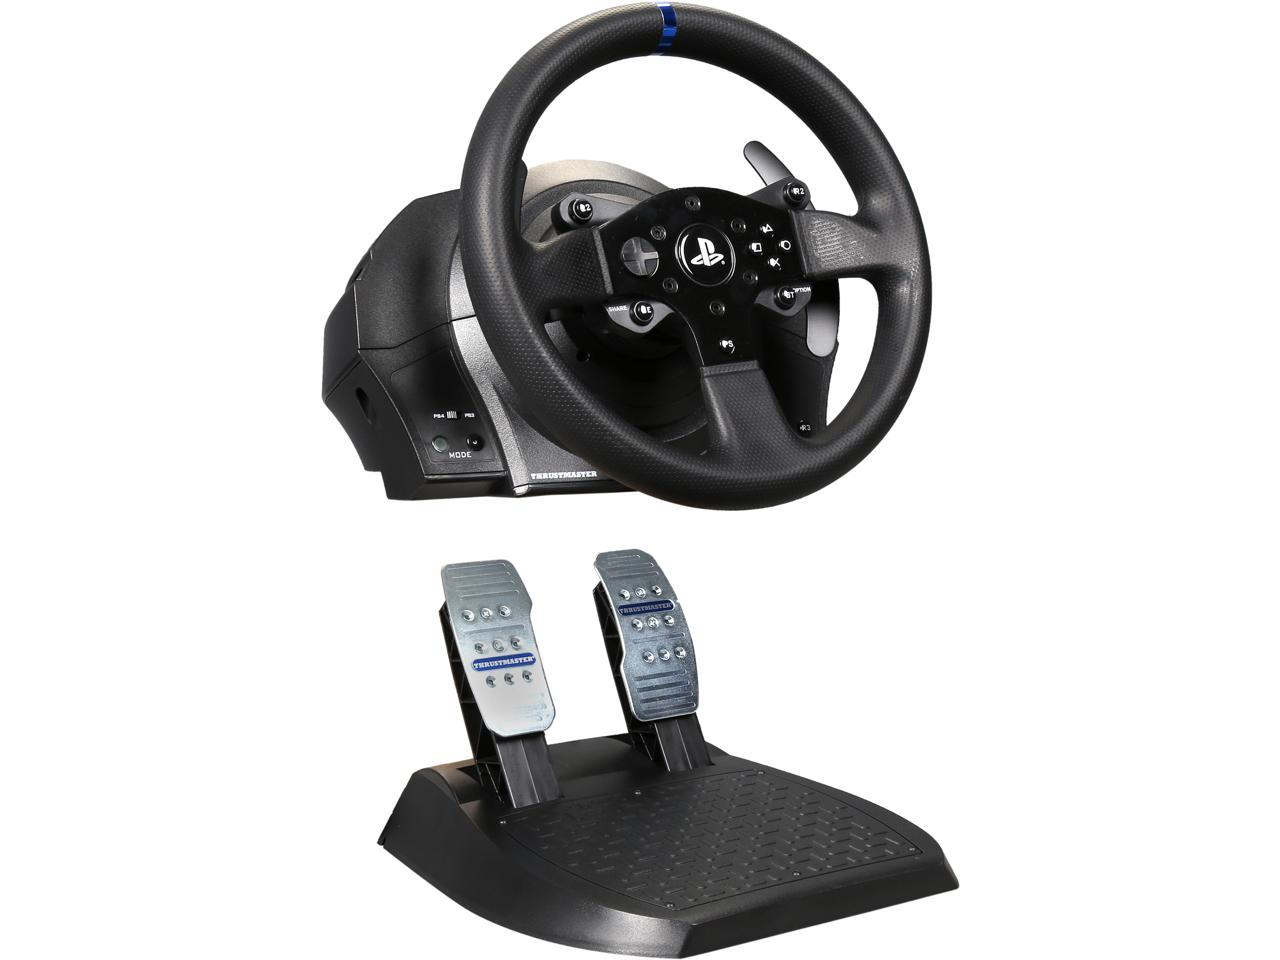 96a46dfc2d0 Thrustmaster T300 RS: 1080 Degrees and the First Official Force-Feedback  Wheel f